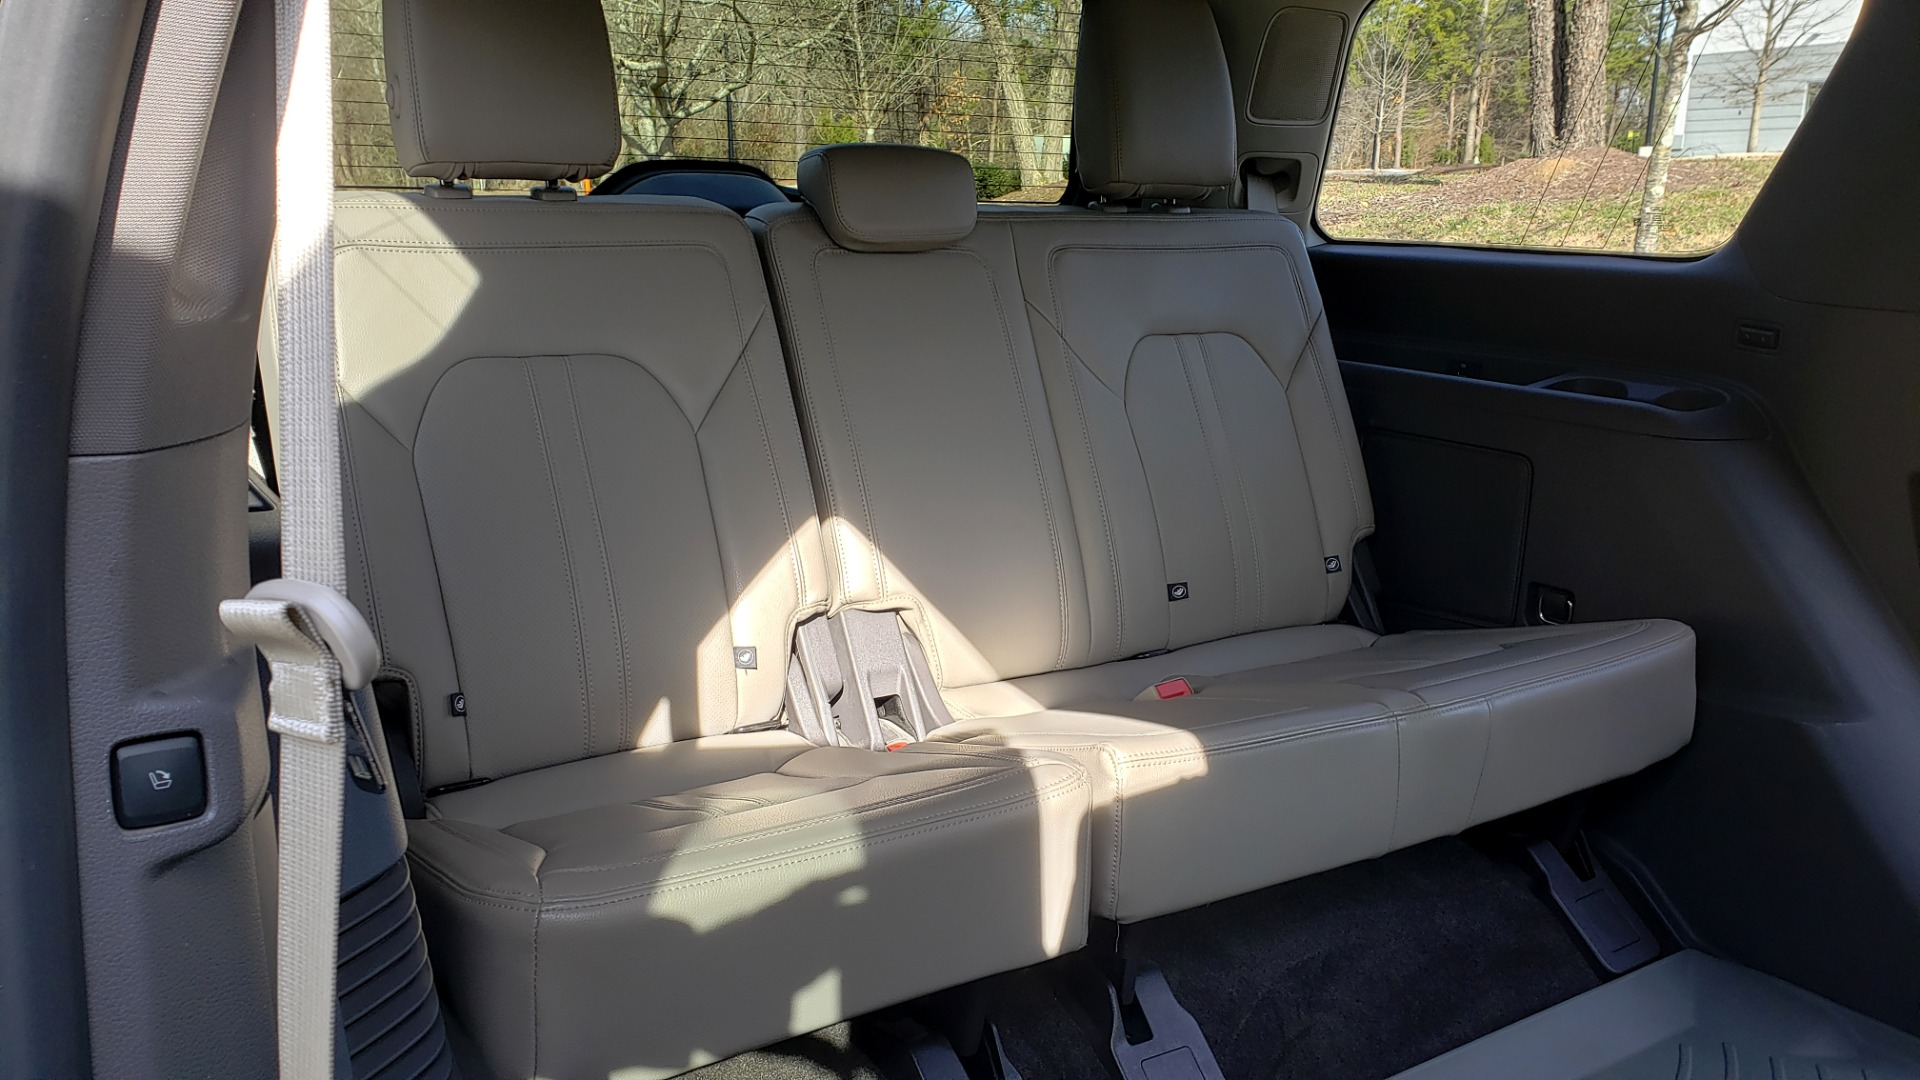 Used 2018 Ford EXPEDITION LIMITED 4X4 / NAV / PANO-ROOF / 3-ROW / DRVR ASST / REARVIEW for sale Sold at Formula Imports in Charlotte NC 28227 27